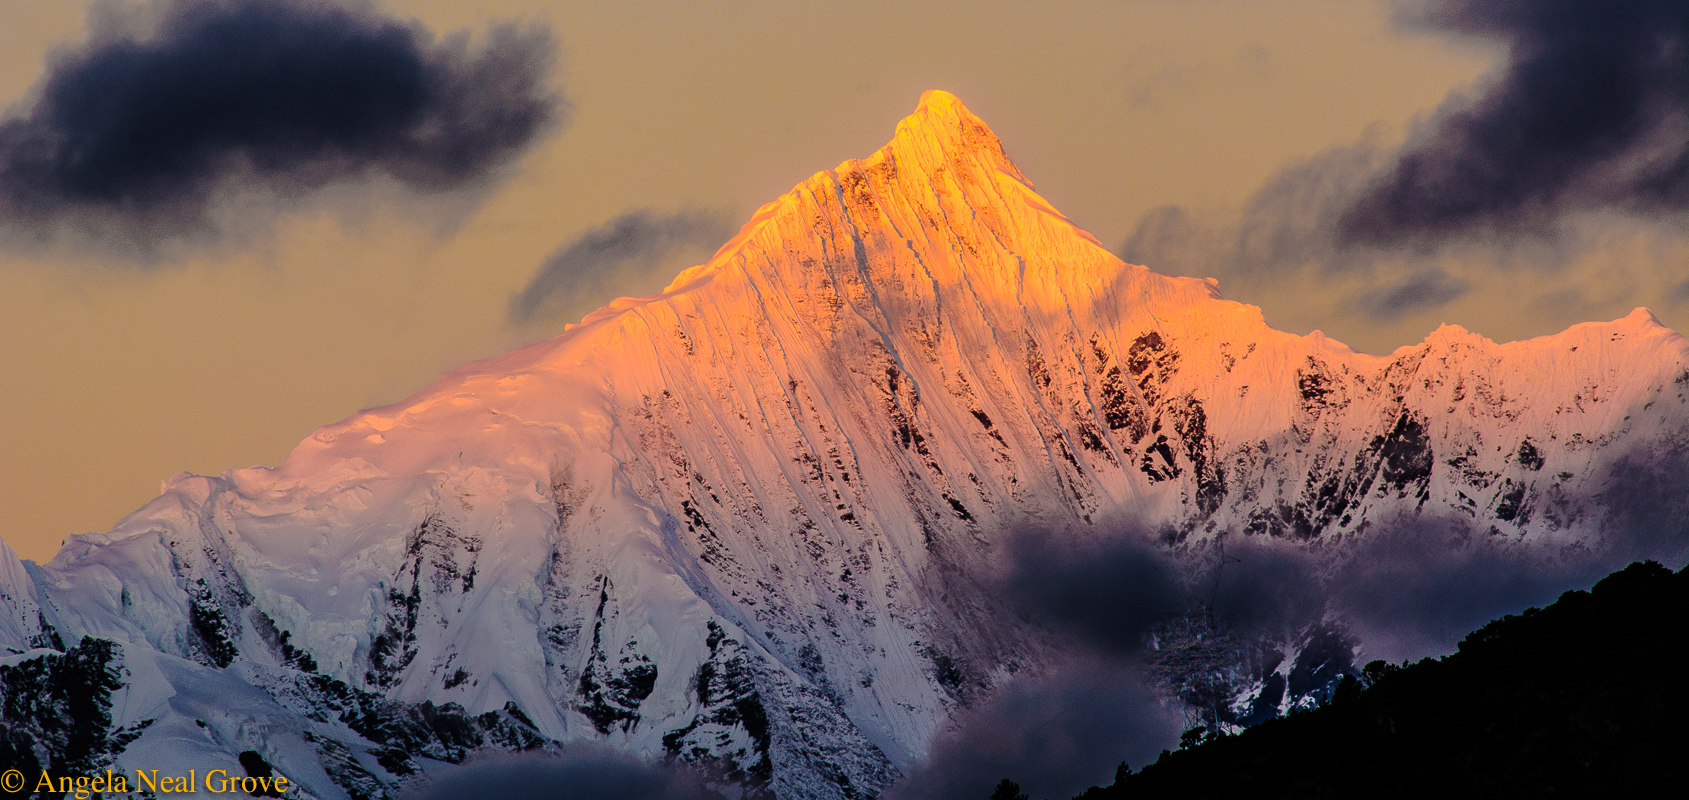 Shangri-La: Mt. Kawegabo at dawn by Angela Neal Grove